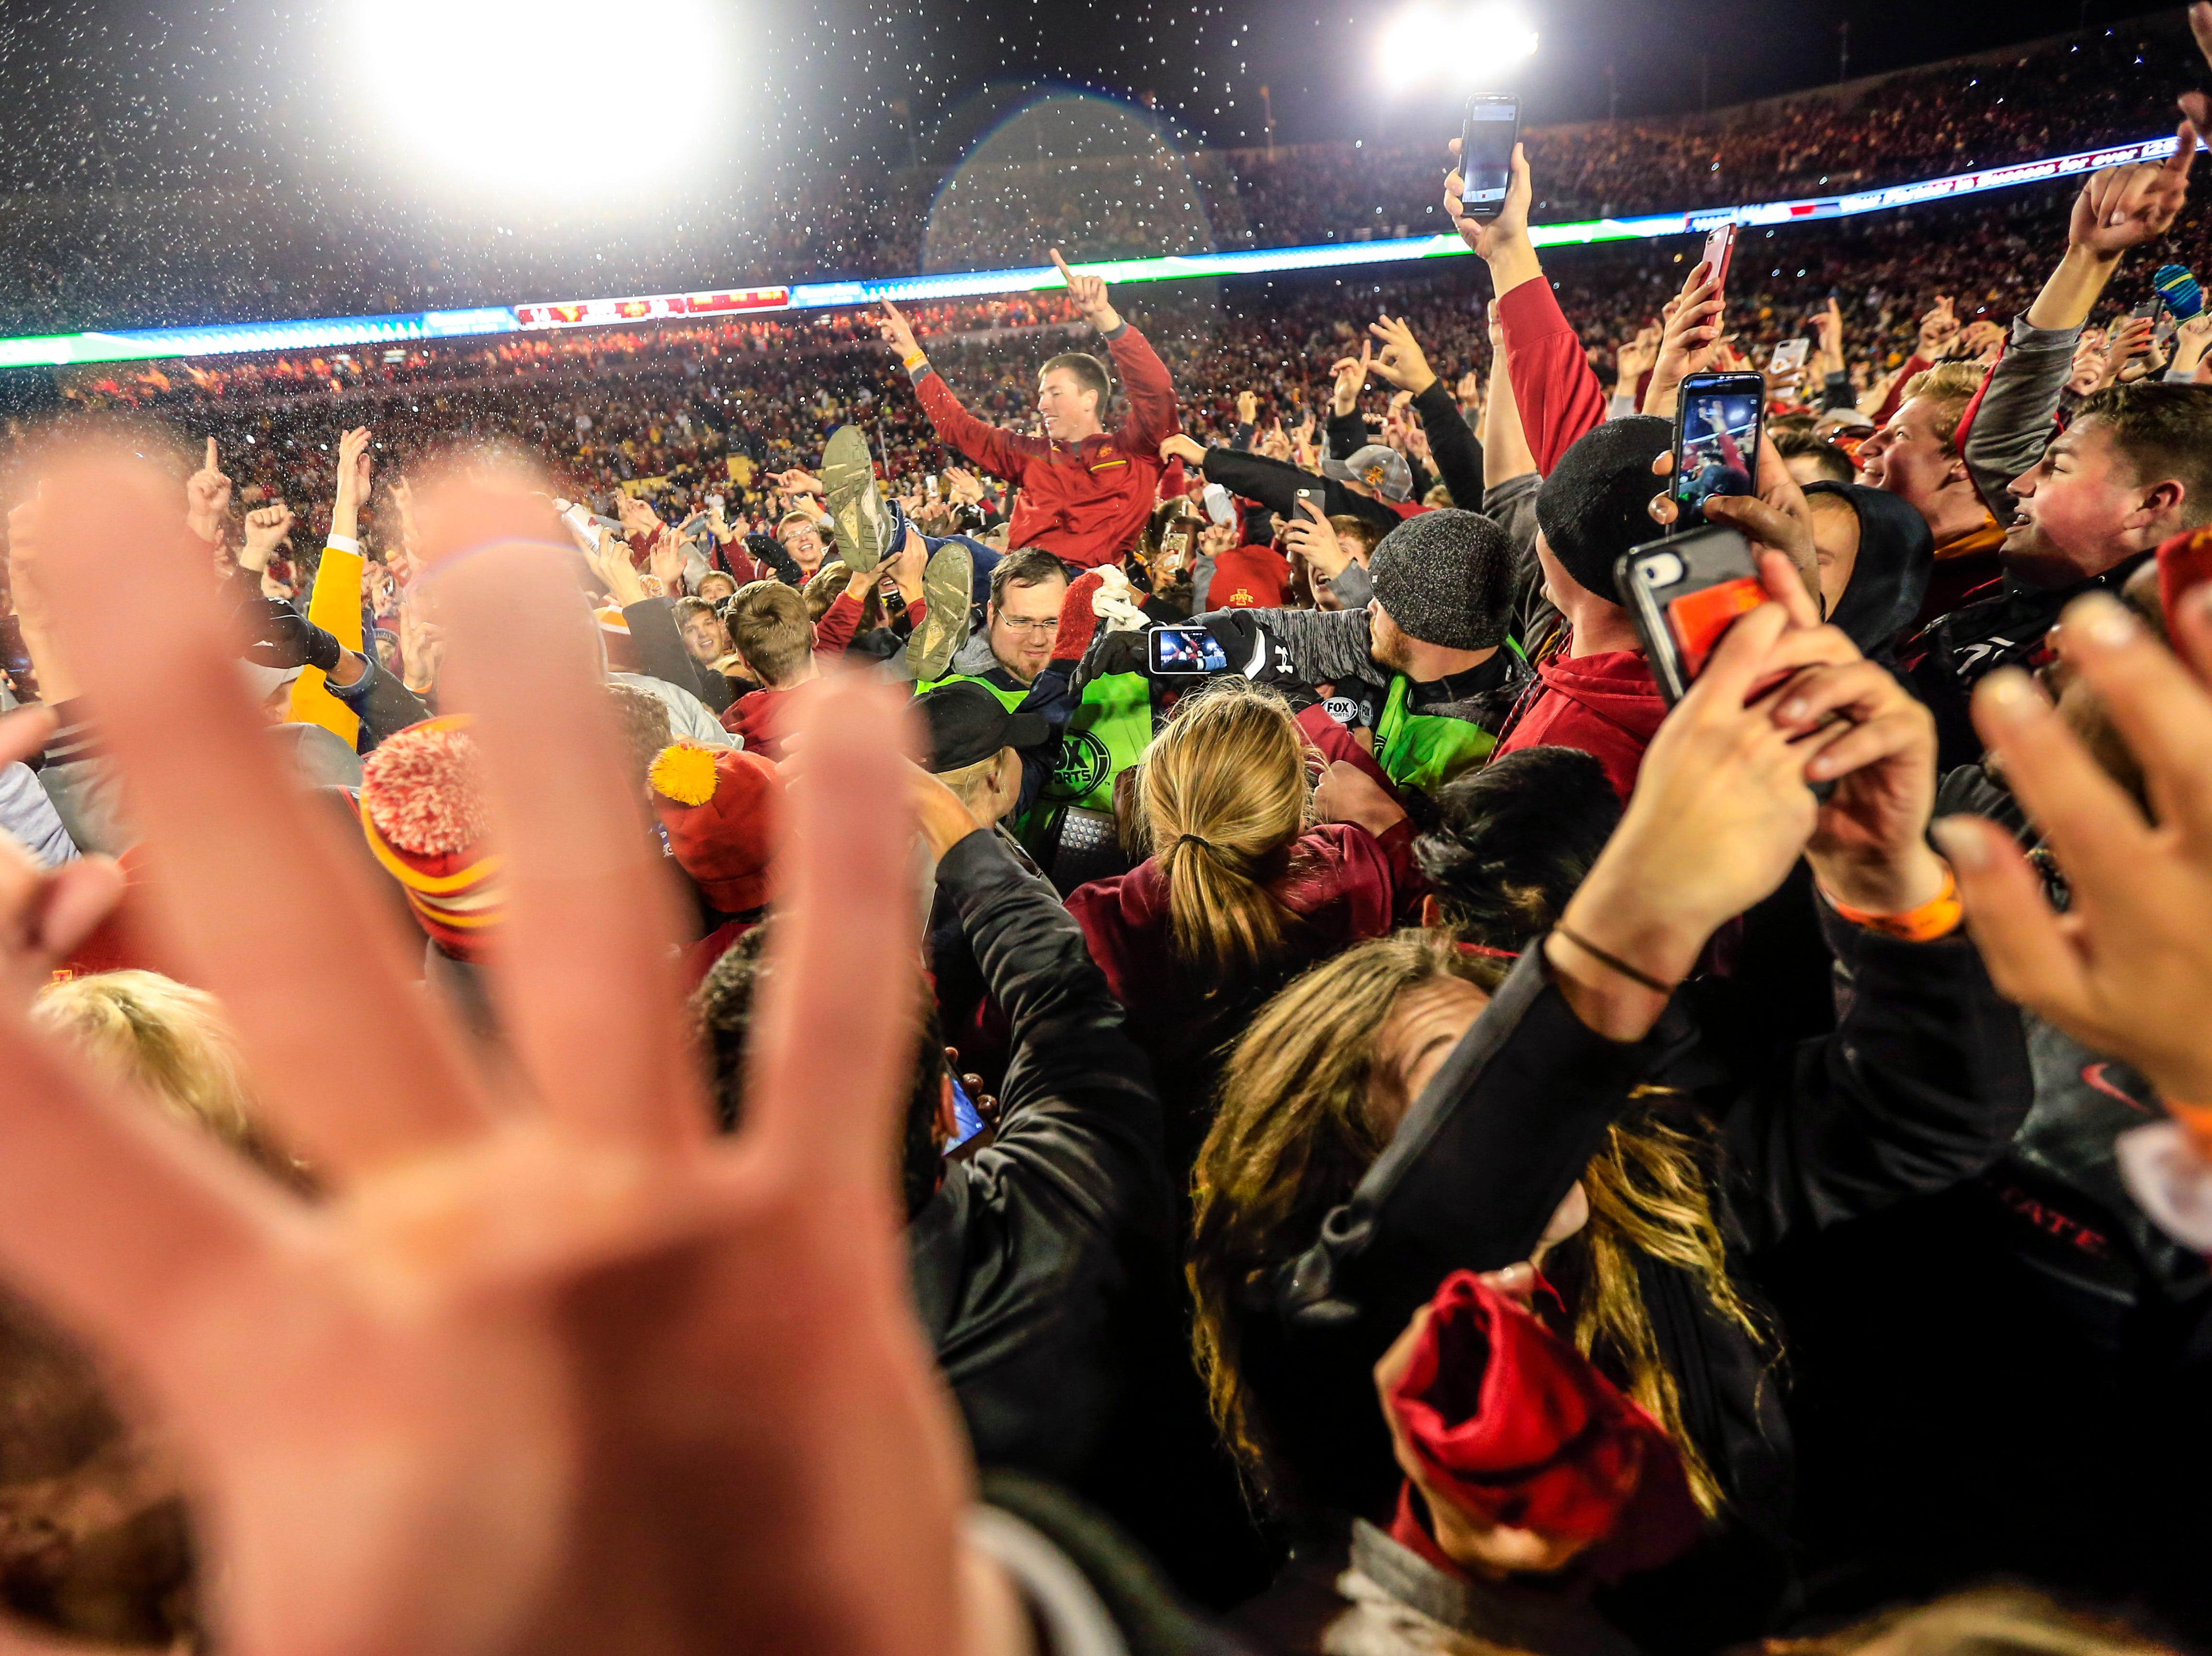 Fans rush the field after Iowa State defeats West Virginia game at Jack Trice Stadium Saturday, Oct. 13, 2018.